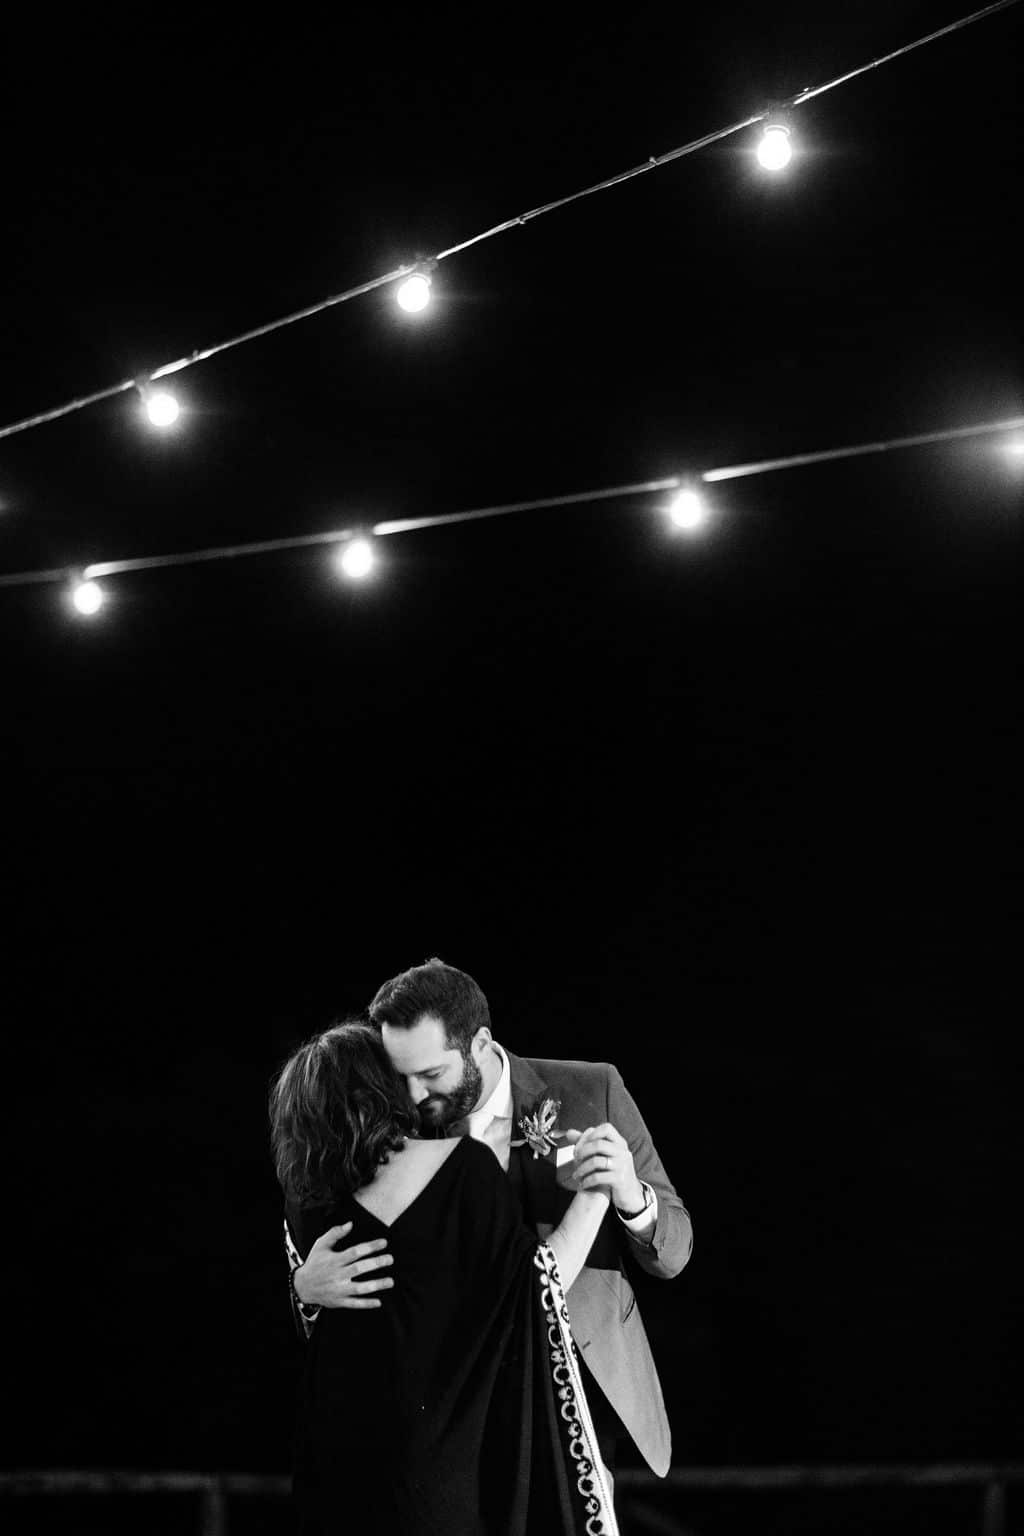 mother and groom dance in black and white outdoor wedding